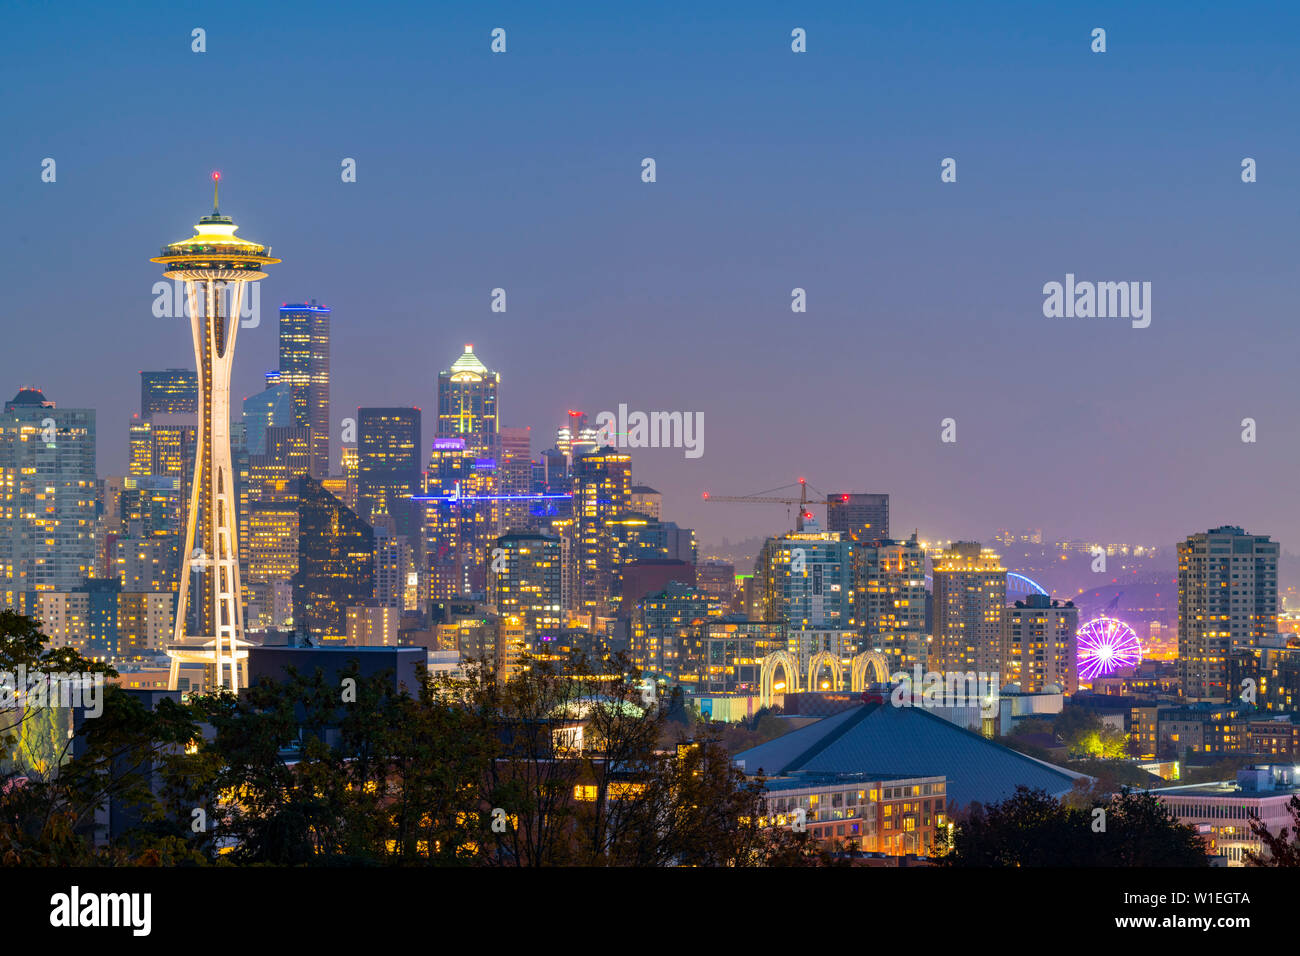 View of the Space Needle from Kerry Park, Seattle, Washington State, United States of America, North America Stock Photo